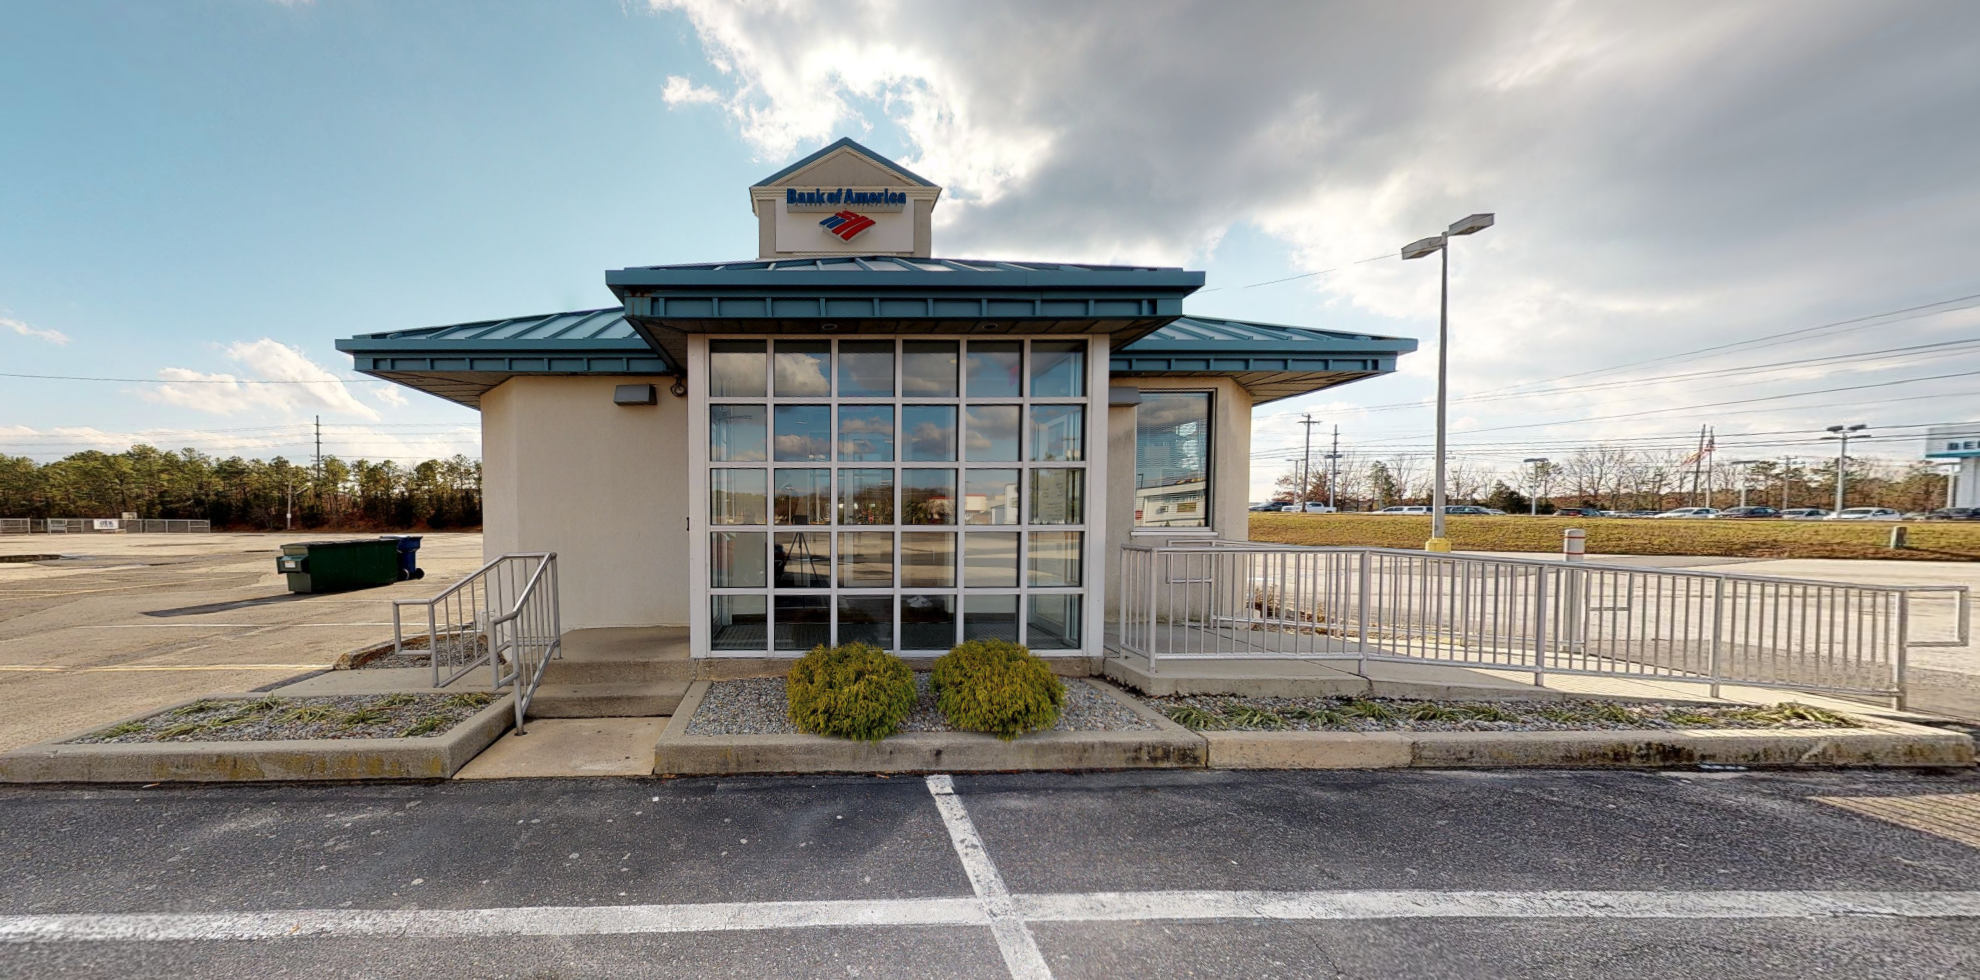 Bank of America financial center with drive-thru ATM | 6718 Black Horse Pike, Egg Harbor Township, NJ 08234